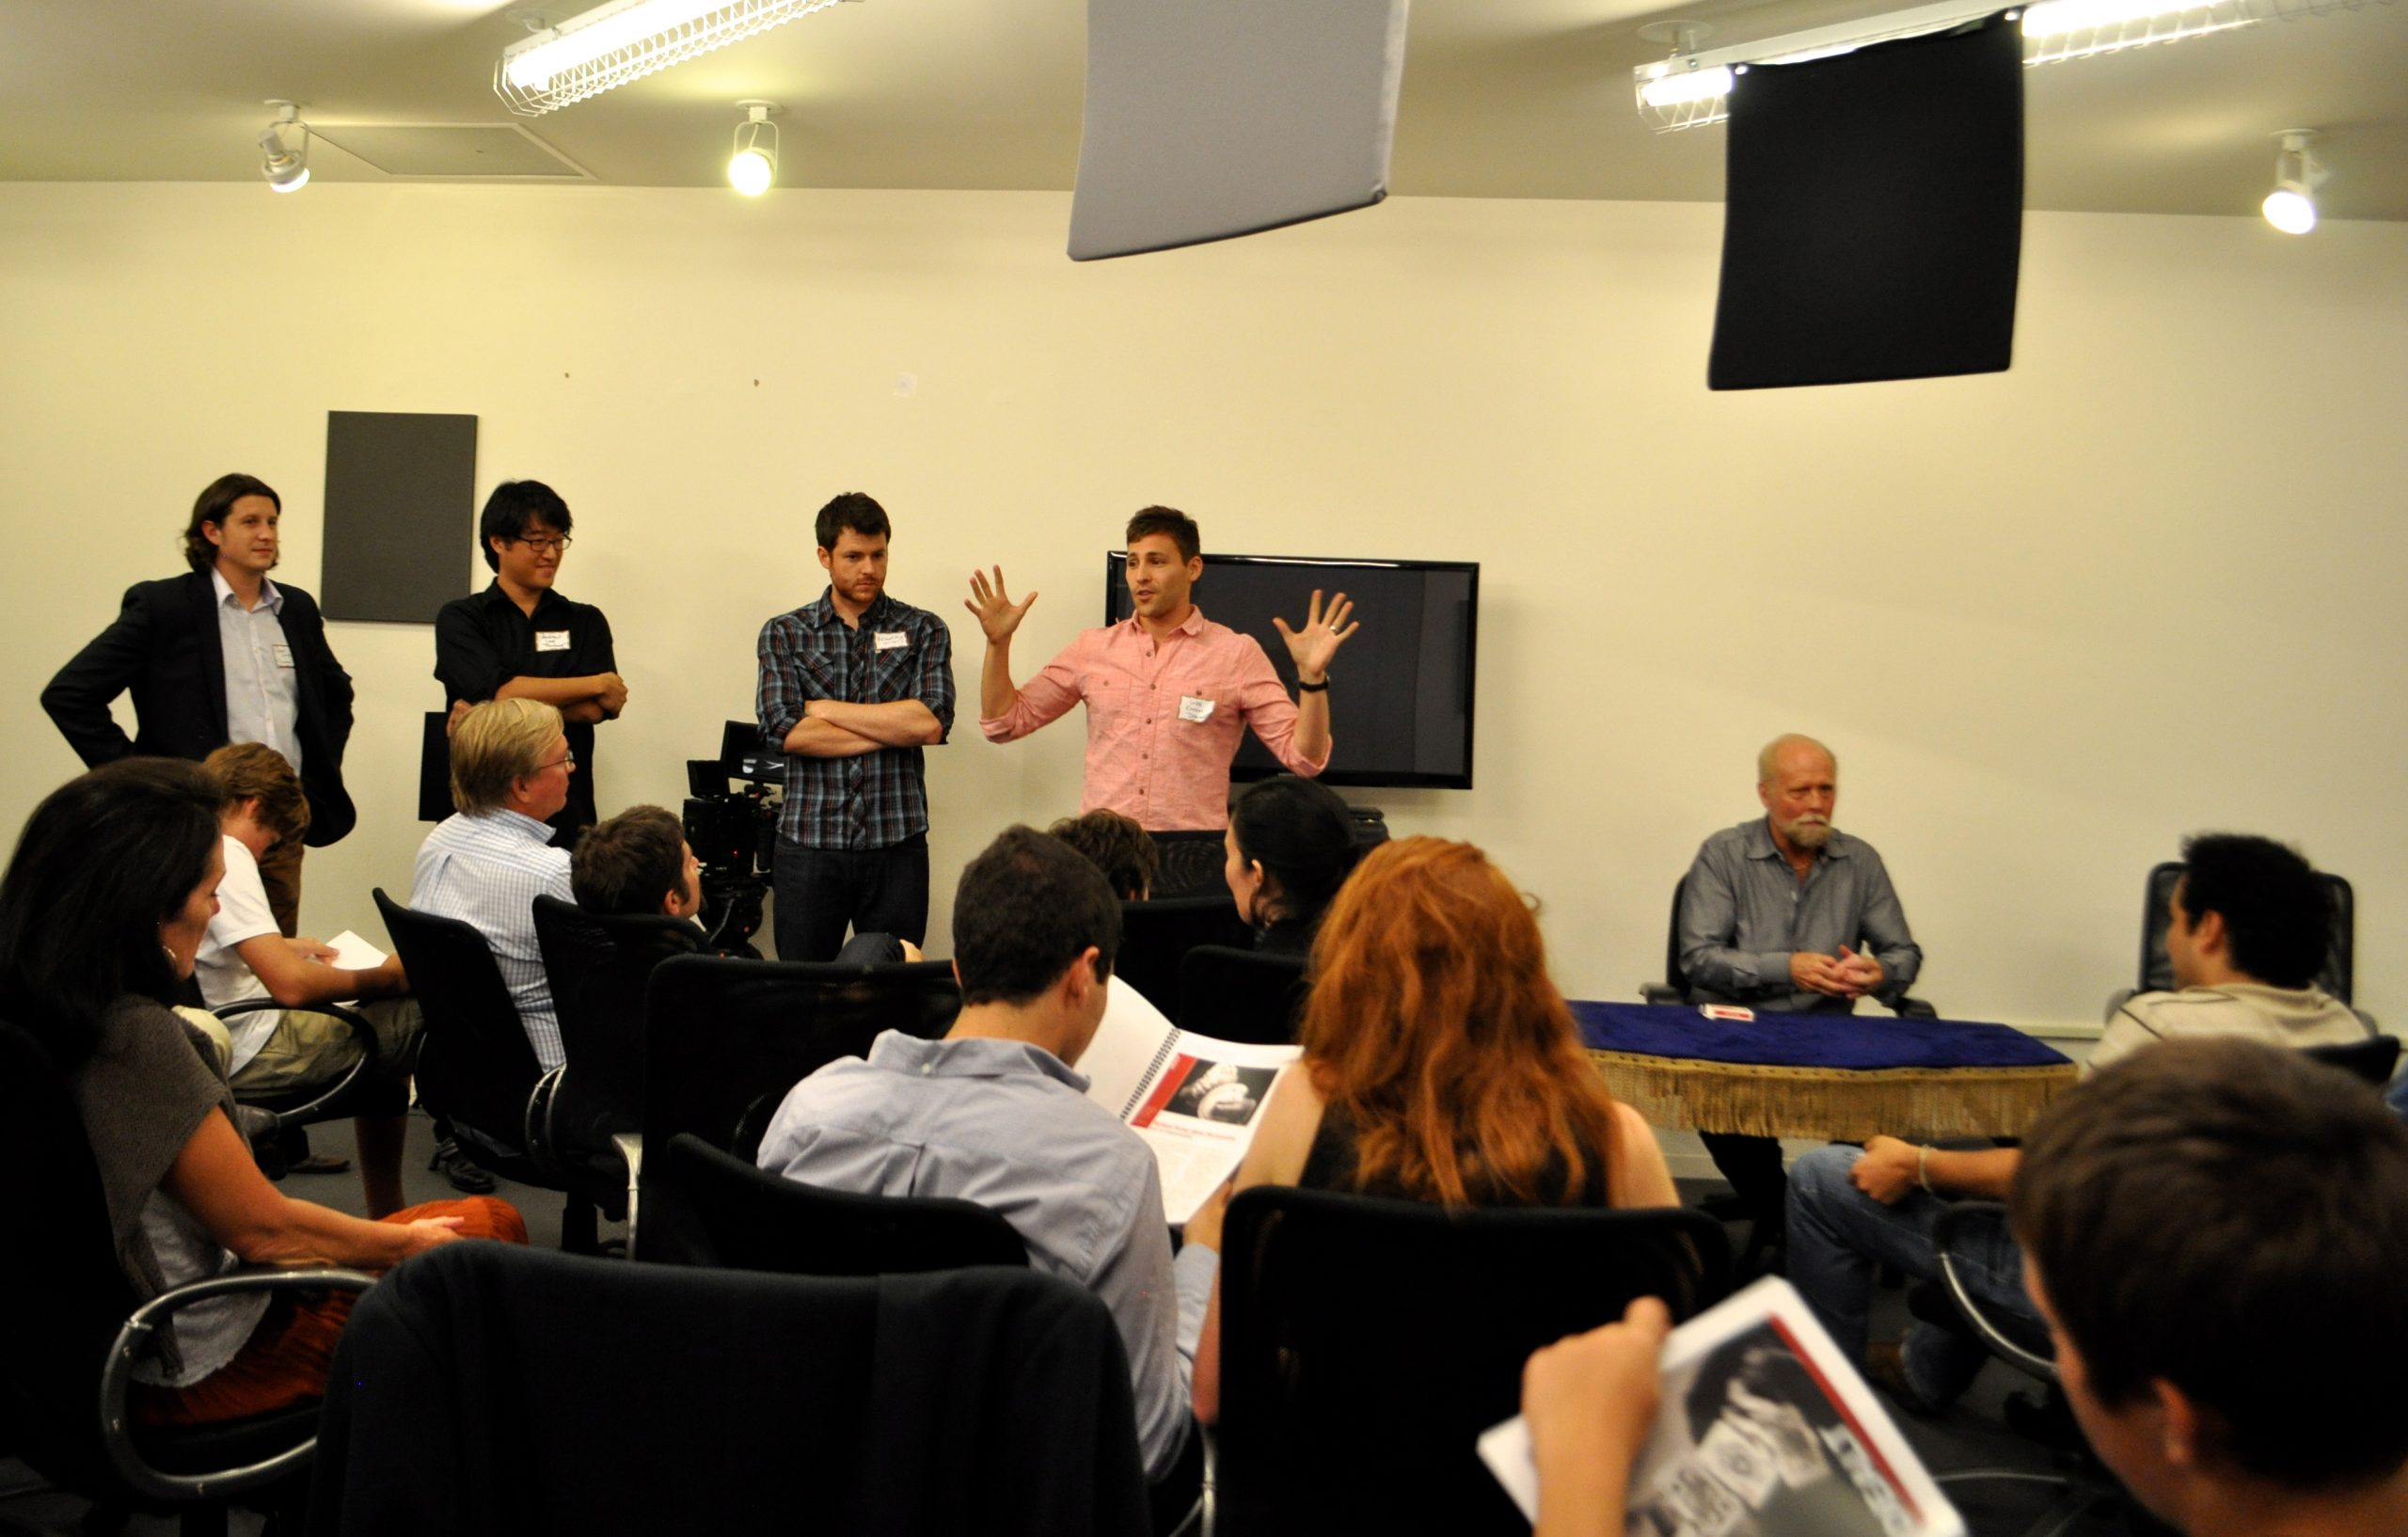 """The """"Dealt"""" crew pitches the film to investors at Geekdom with Richard Turner, card mechanic (right). From left: Producer Russell Wayne Groves, Producer Andrew Lee, Writer Bradley Jackson, and Director Luke Korem. Photo by Iris Dimmick."""